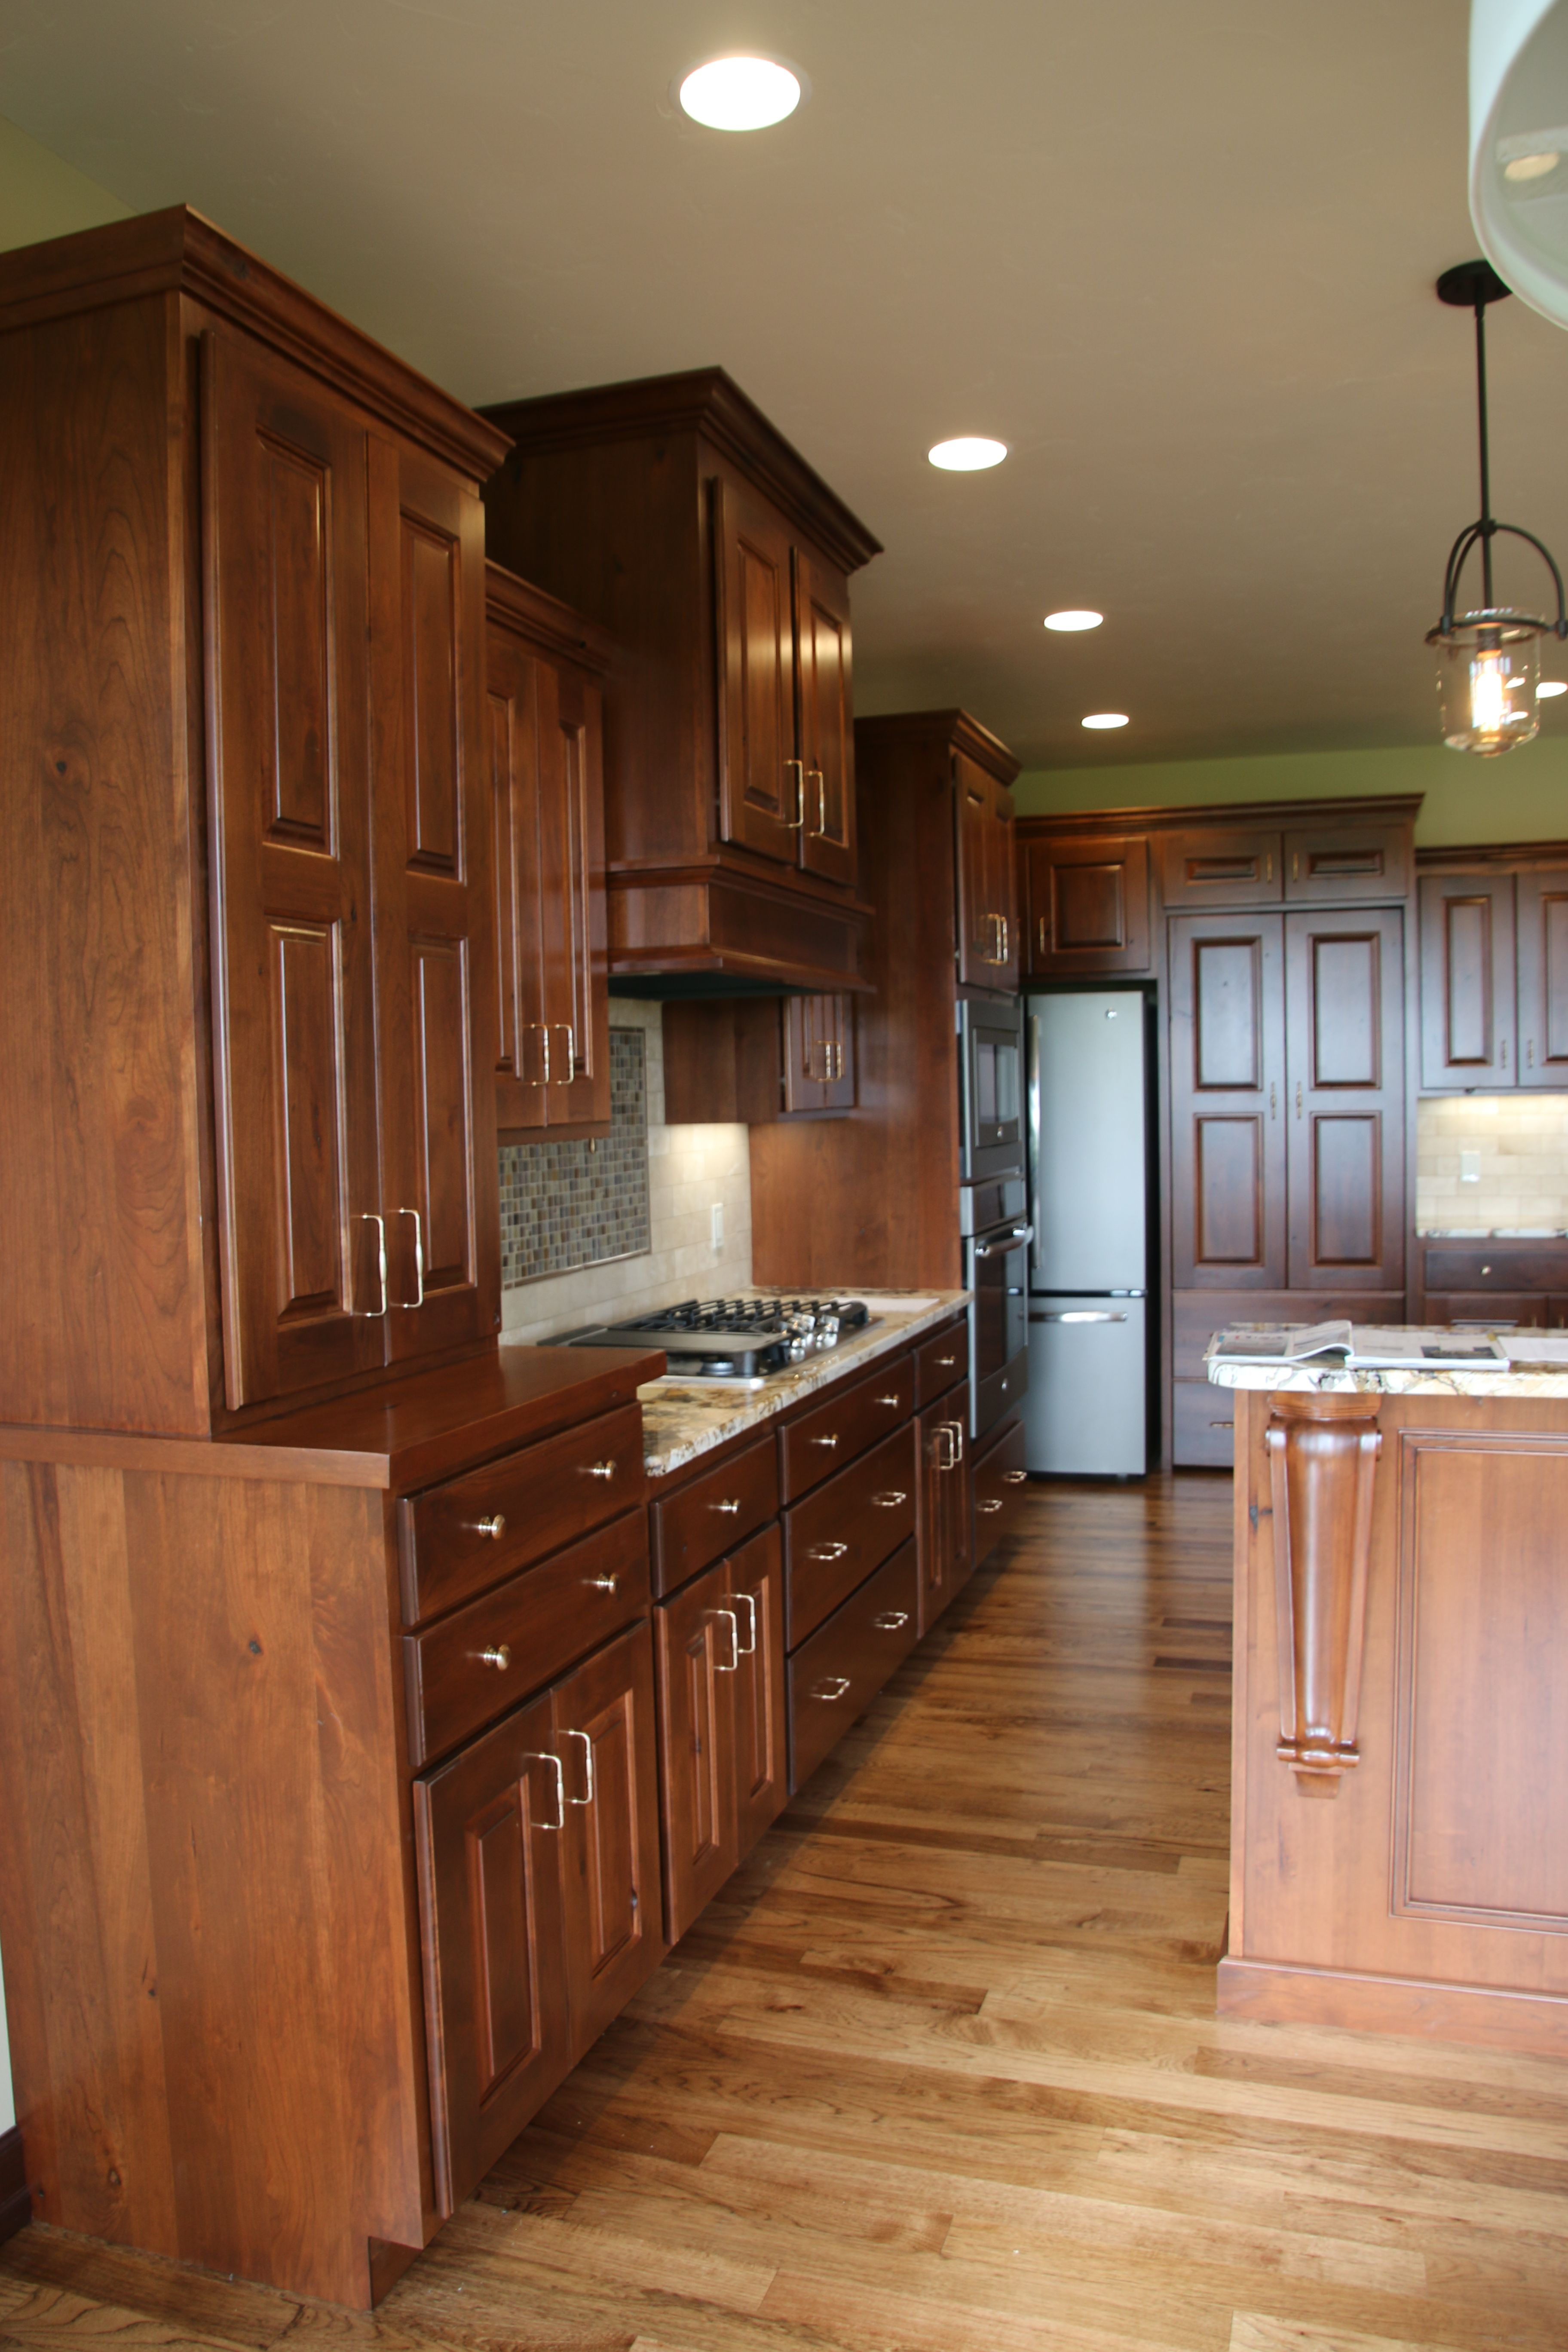 Kitchen Rustic Cherry Wood W Rose Gold Hardware Cherry Wood Cabinets Rustic Kitchen Custom Cabinetry